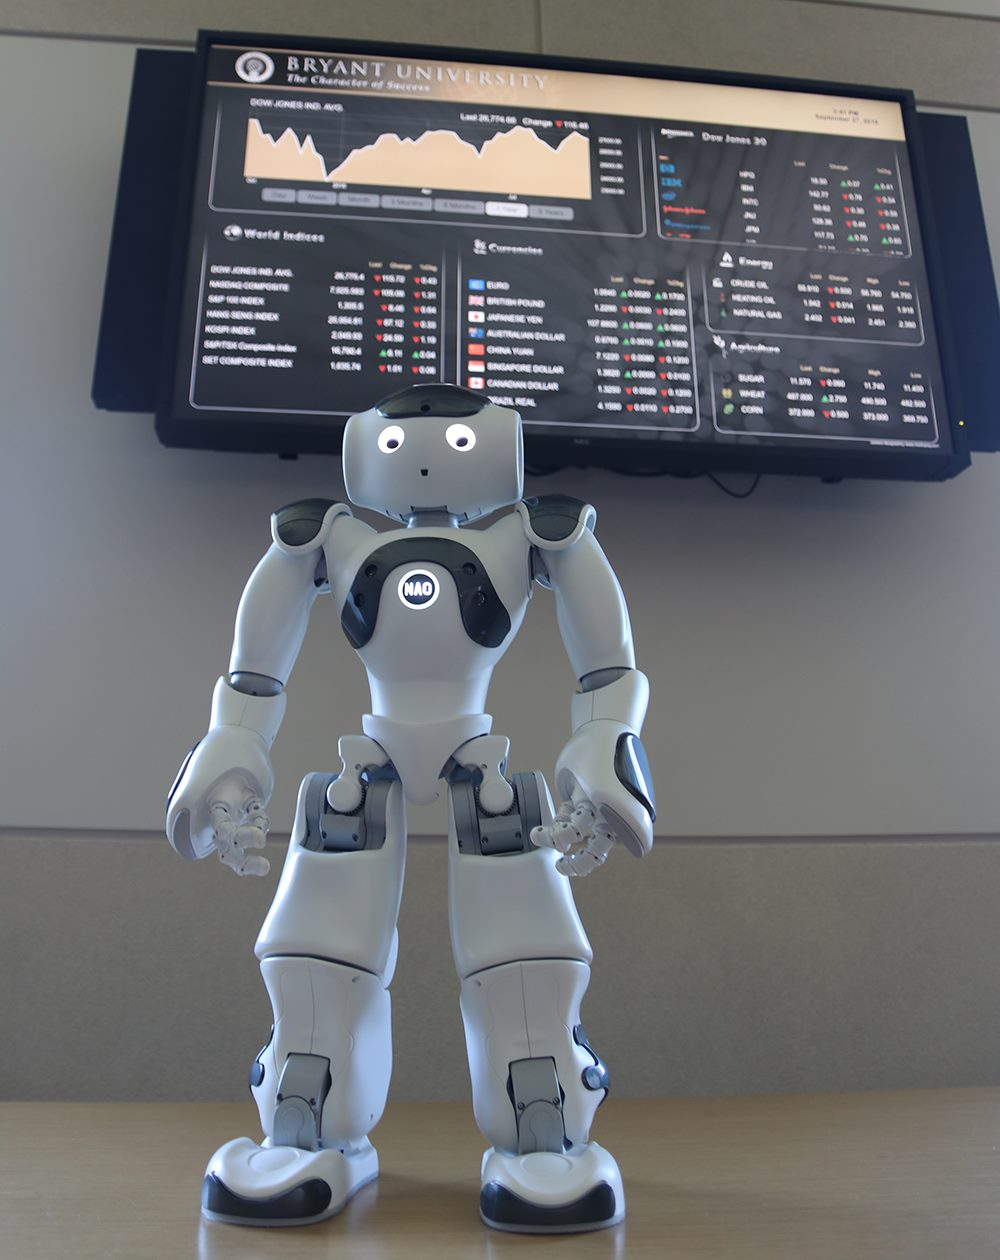 TEA TALKS Bryant: A Conversation with NAO the Robot